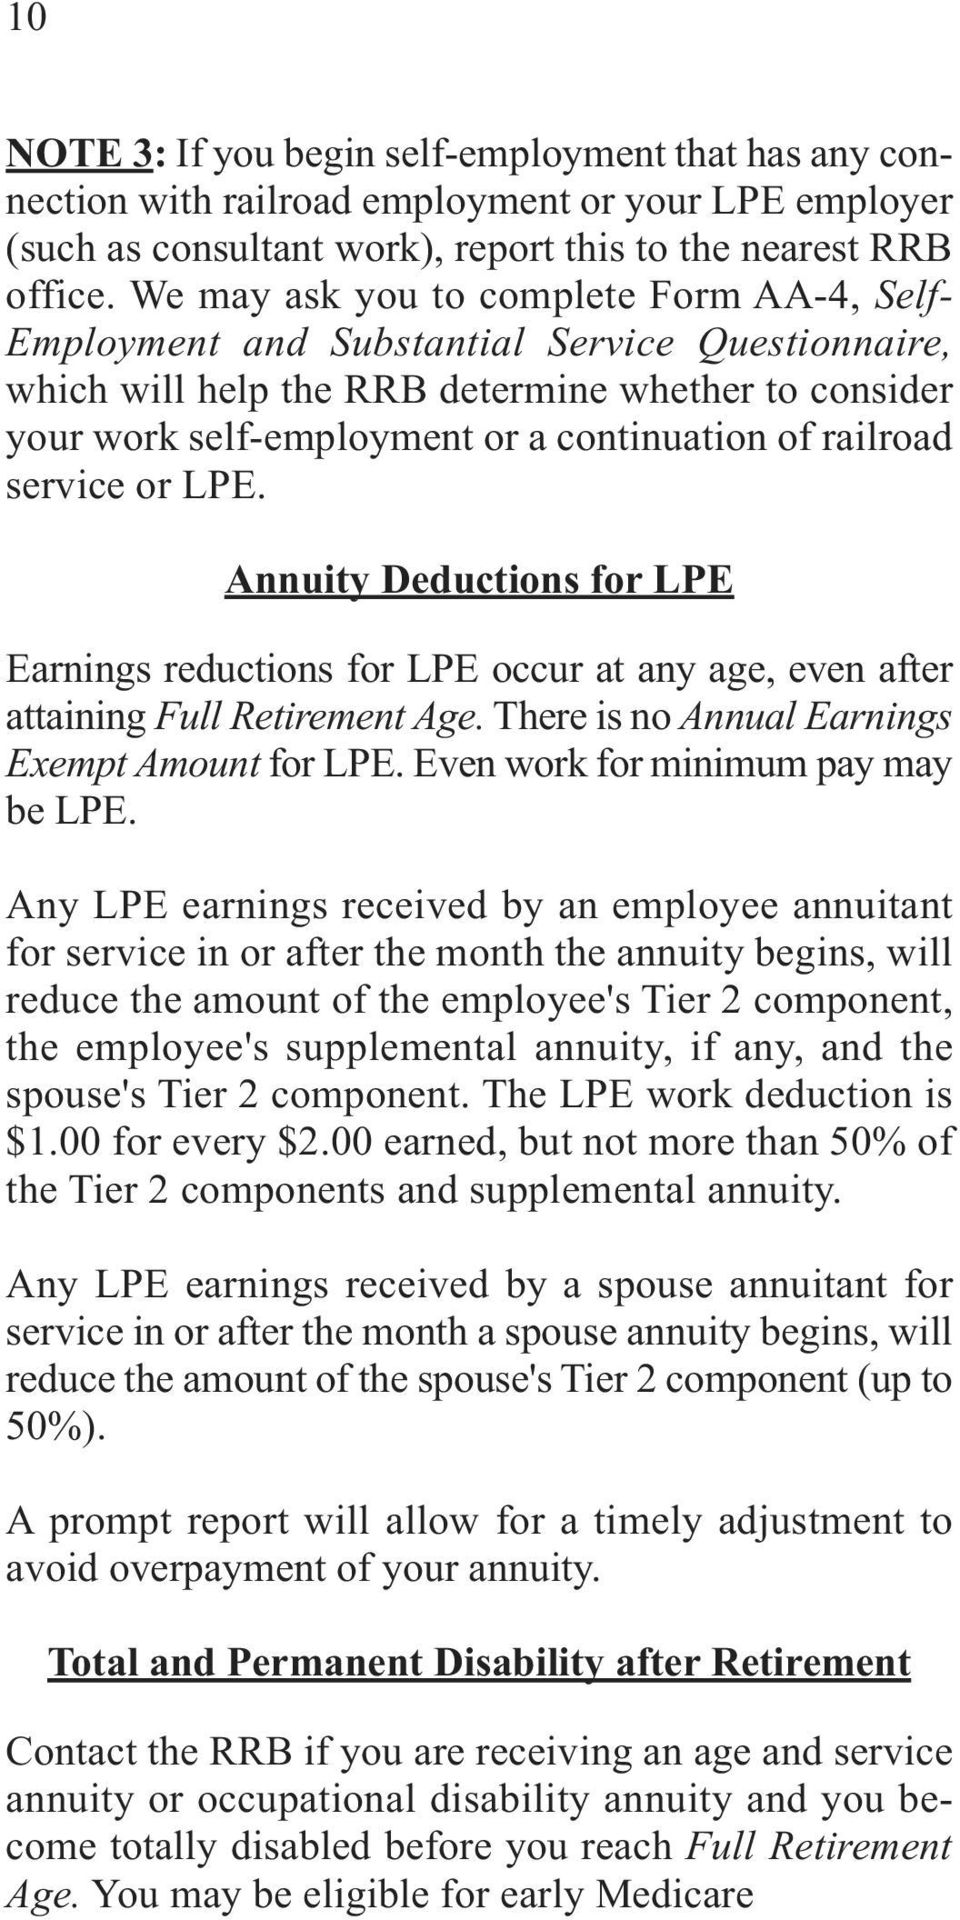 railroad service or LPE. Annuity Deductions for LPE Earnings reductions for LPE occur at any age, even after attaining Full Retirement Age. There is no Annual Earnings Exempt Amount for LPE.